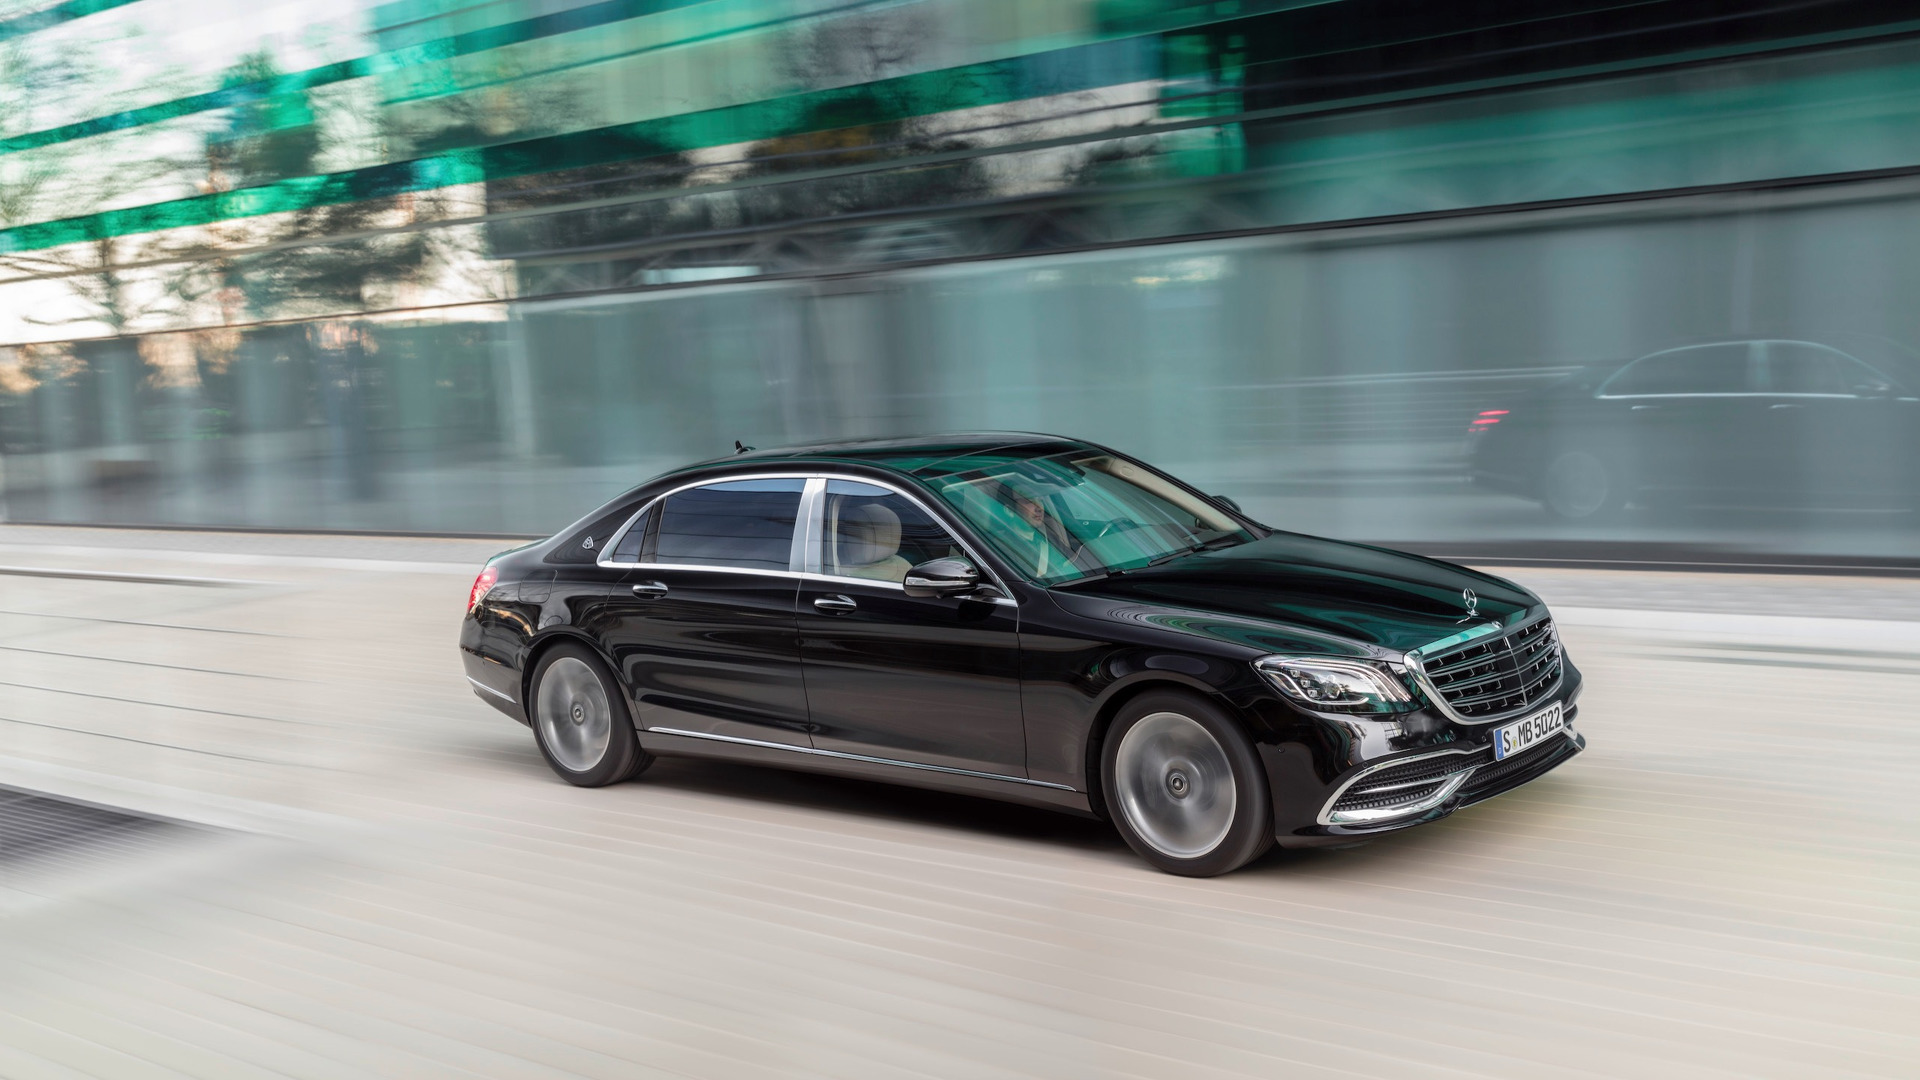 2018 mercedes s class facelift pricing announced in germany. Black Bedroom Furniture Sets. Home Design Ideas